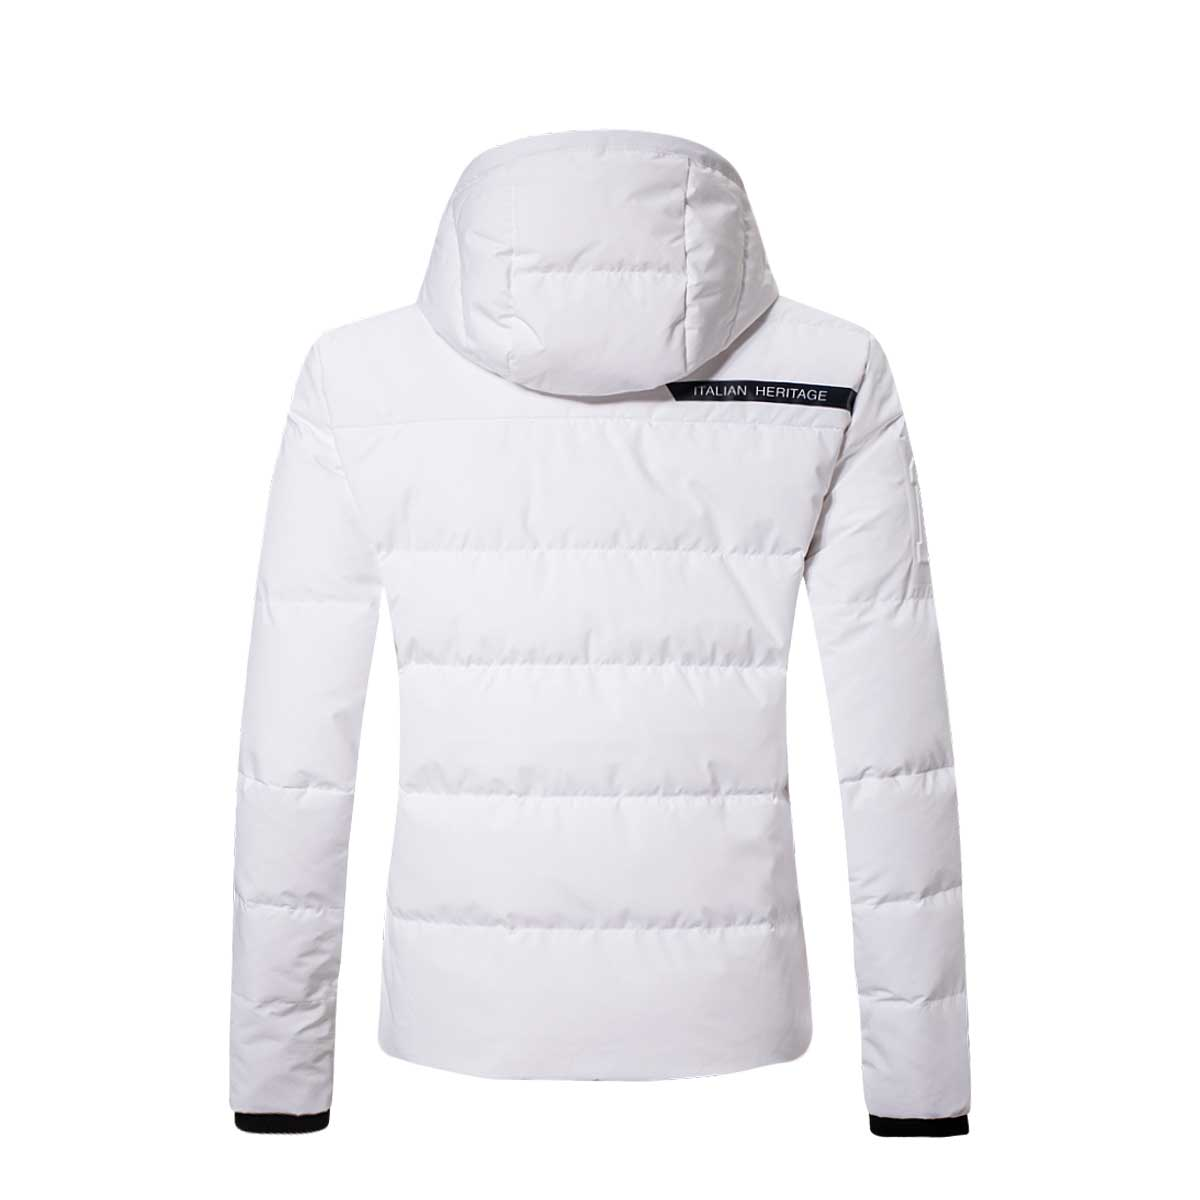 fed927fe01fa ... winter new hooded sports jacket female warm wind down jacket · Zoom ·  lightbox moreview · lightbox moreview · lightbox moreview · lightbox  moreview ...